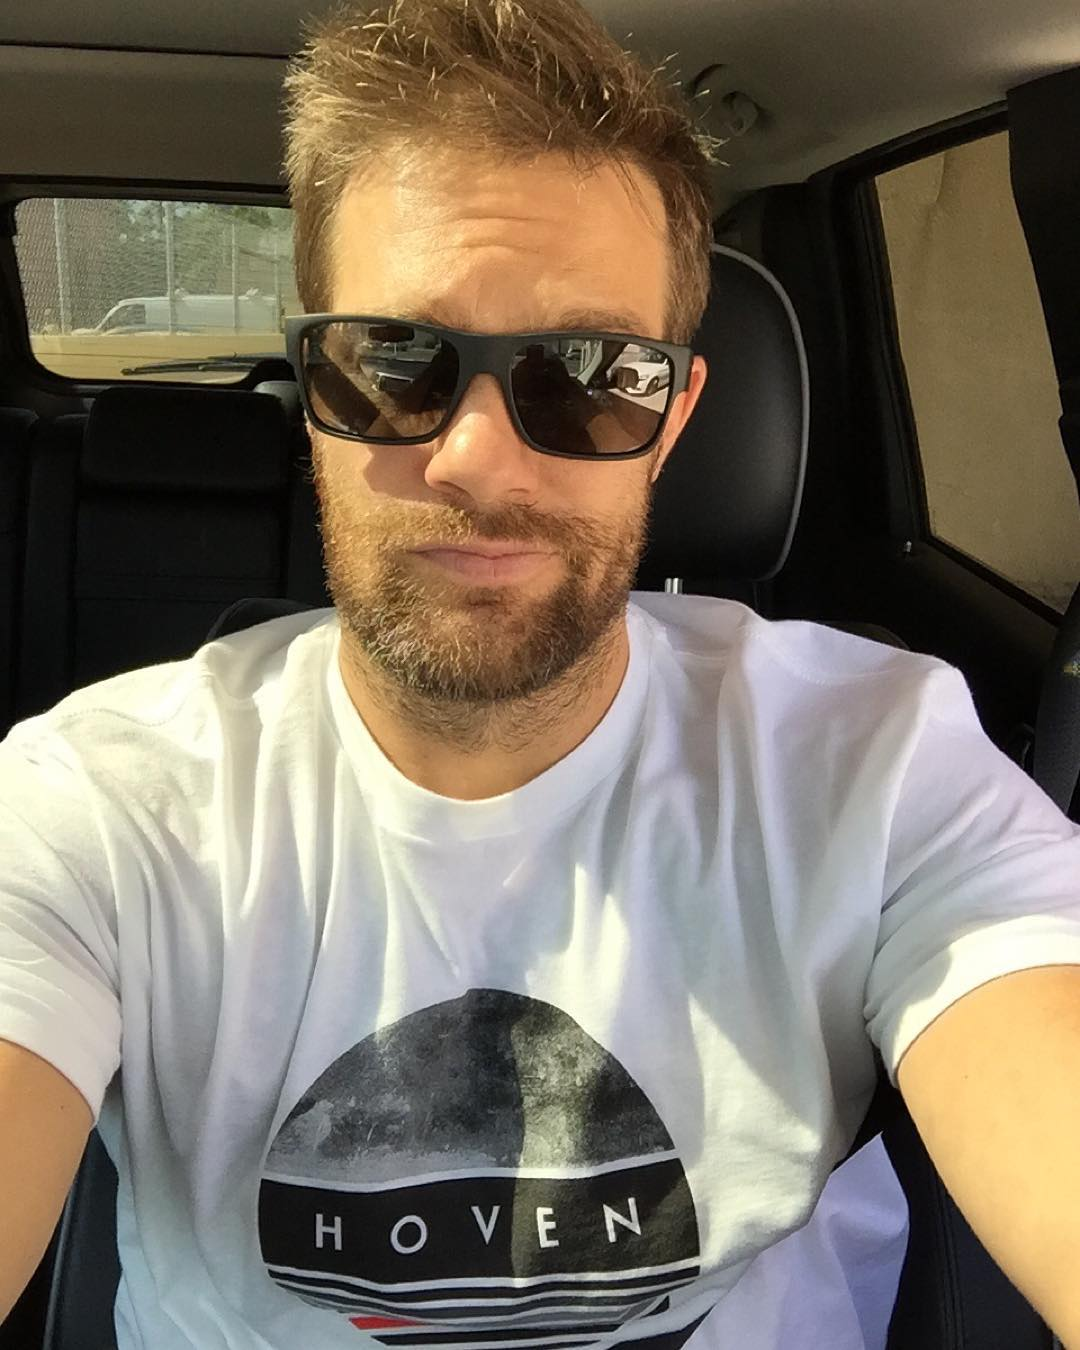 Our good bud and brand ambassador Geoff Stults (@geoffmstults ) LOVES taking shameless car selfies.  You might remember this stud from his roles in 7th Heaven or Wedding Crashers. Stay tuned for his next movie coming soon!!